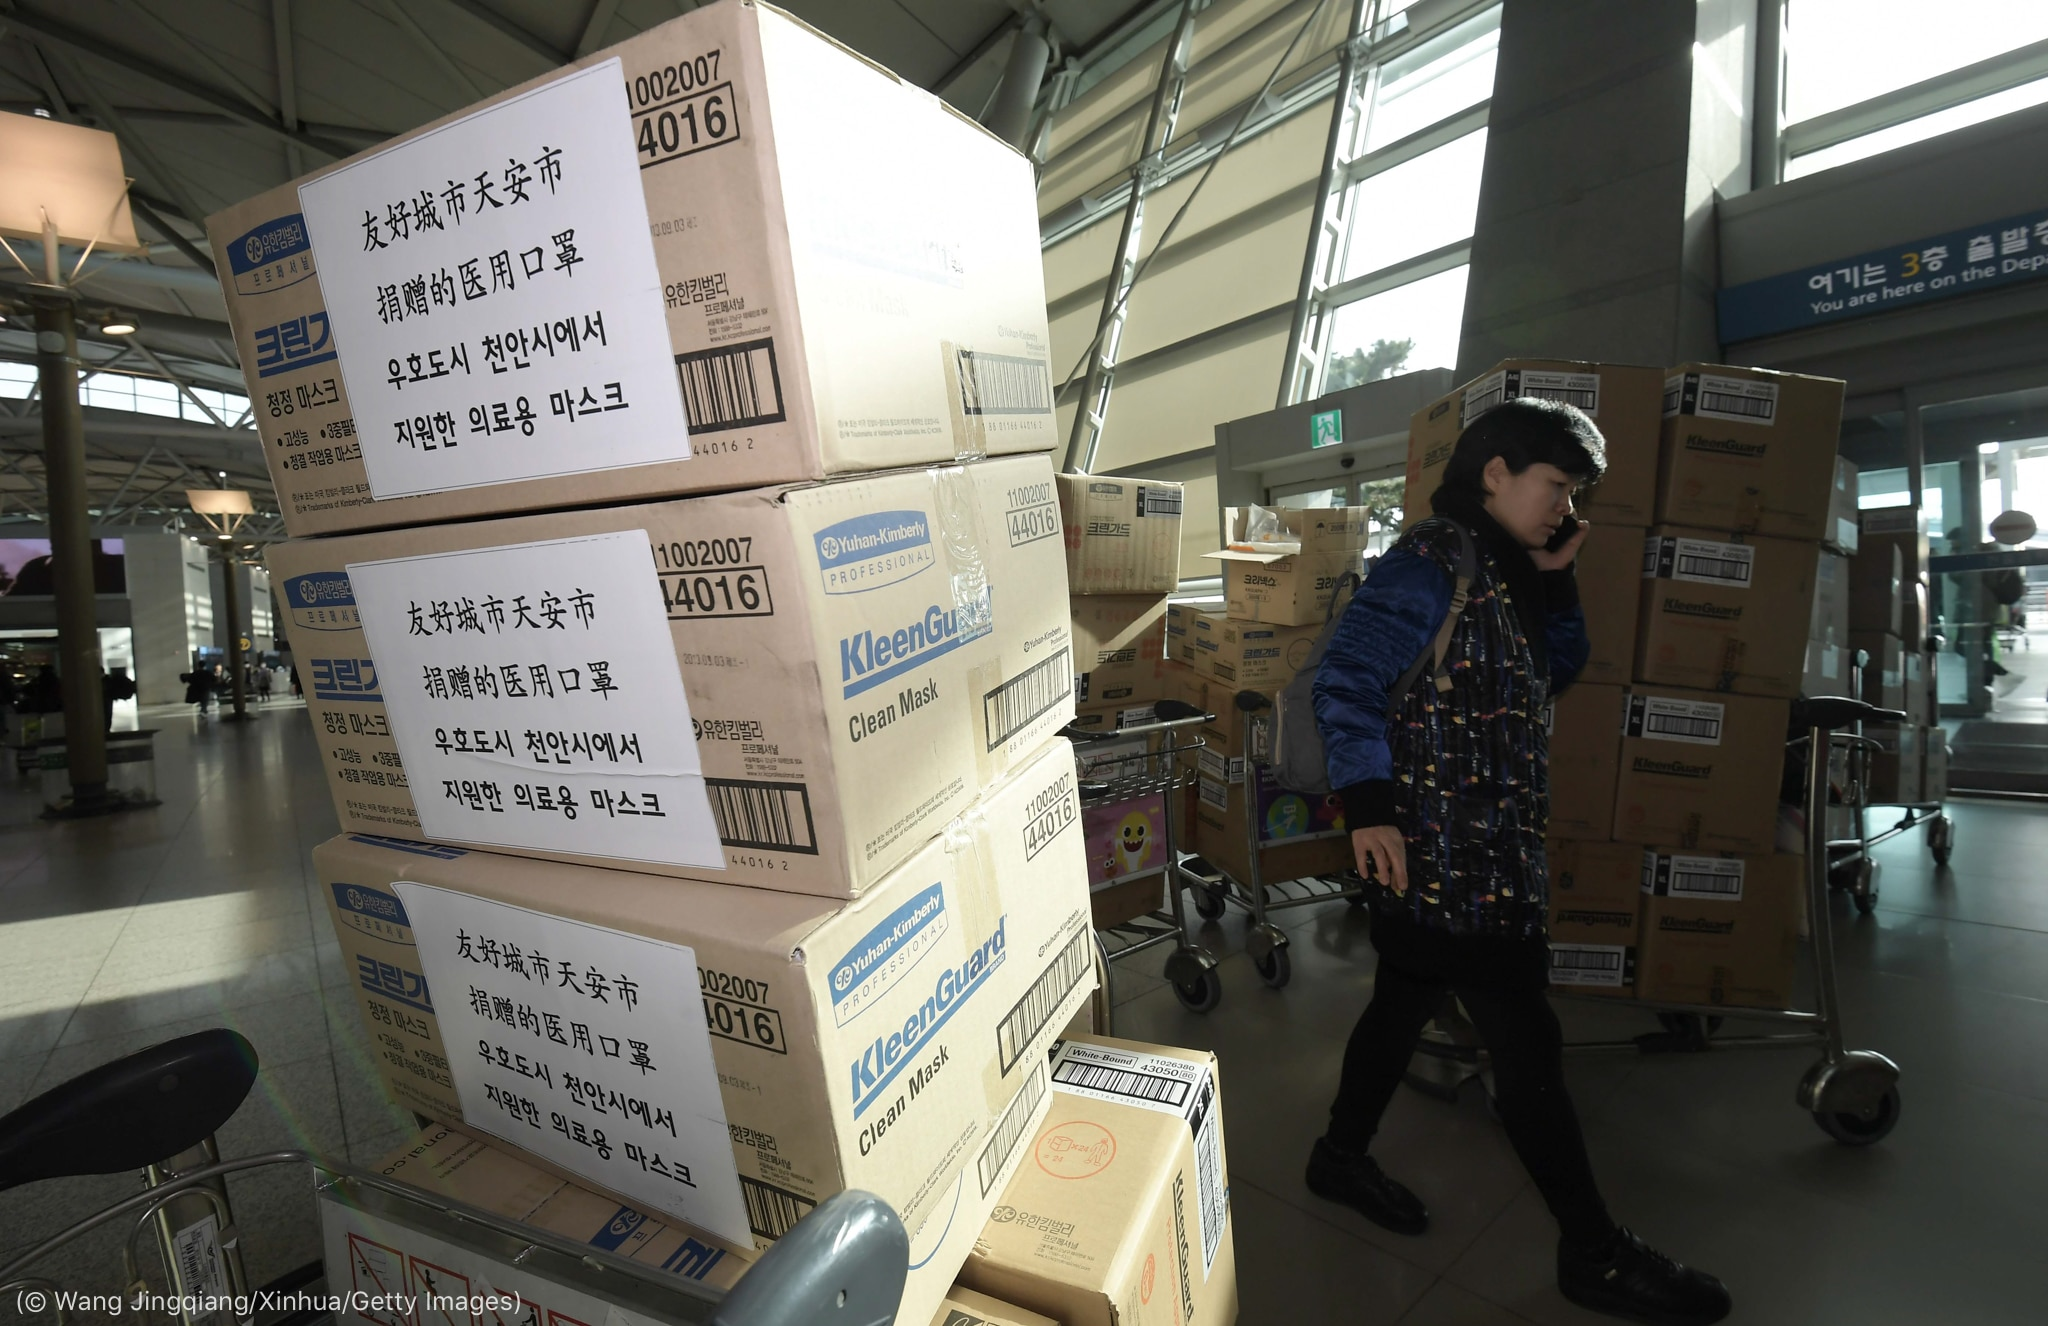 Person walking by stacked boxes (© Wang Jingqiang/Xinhua/Getty Images)